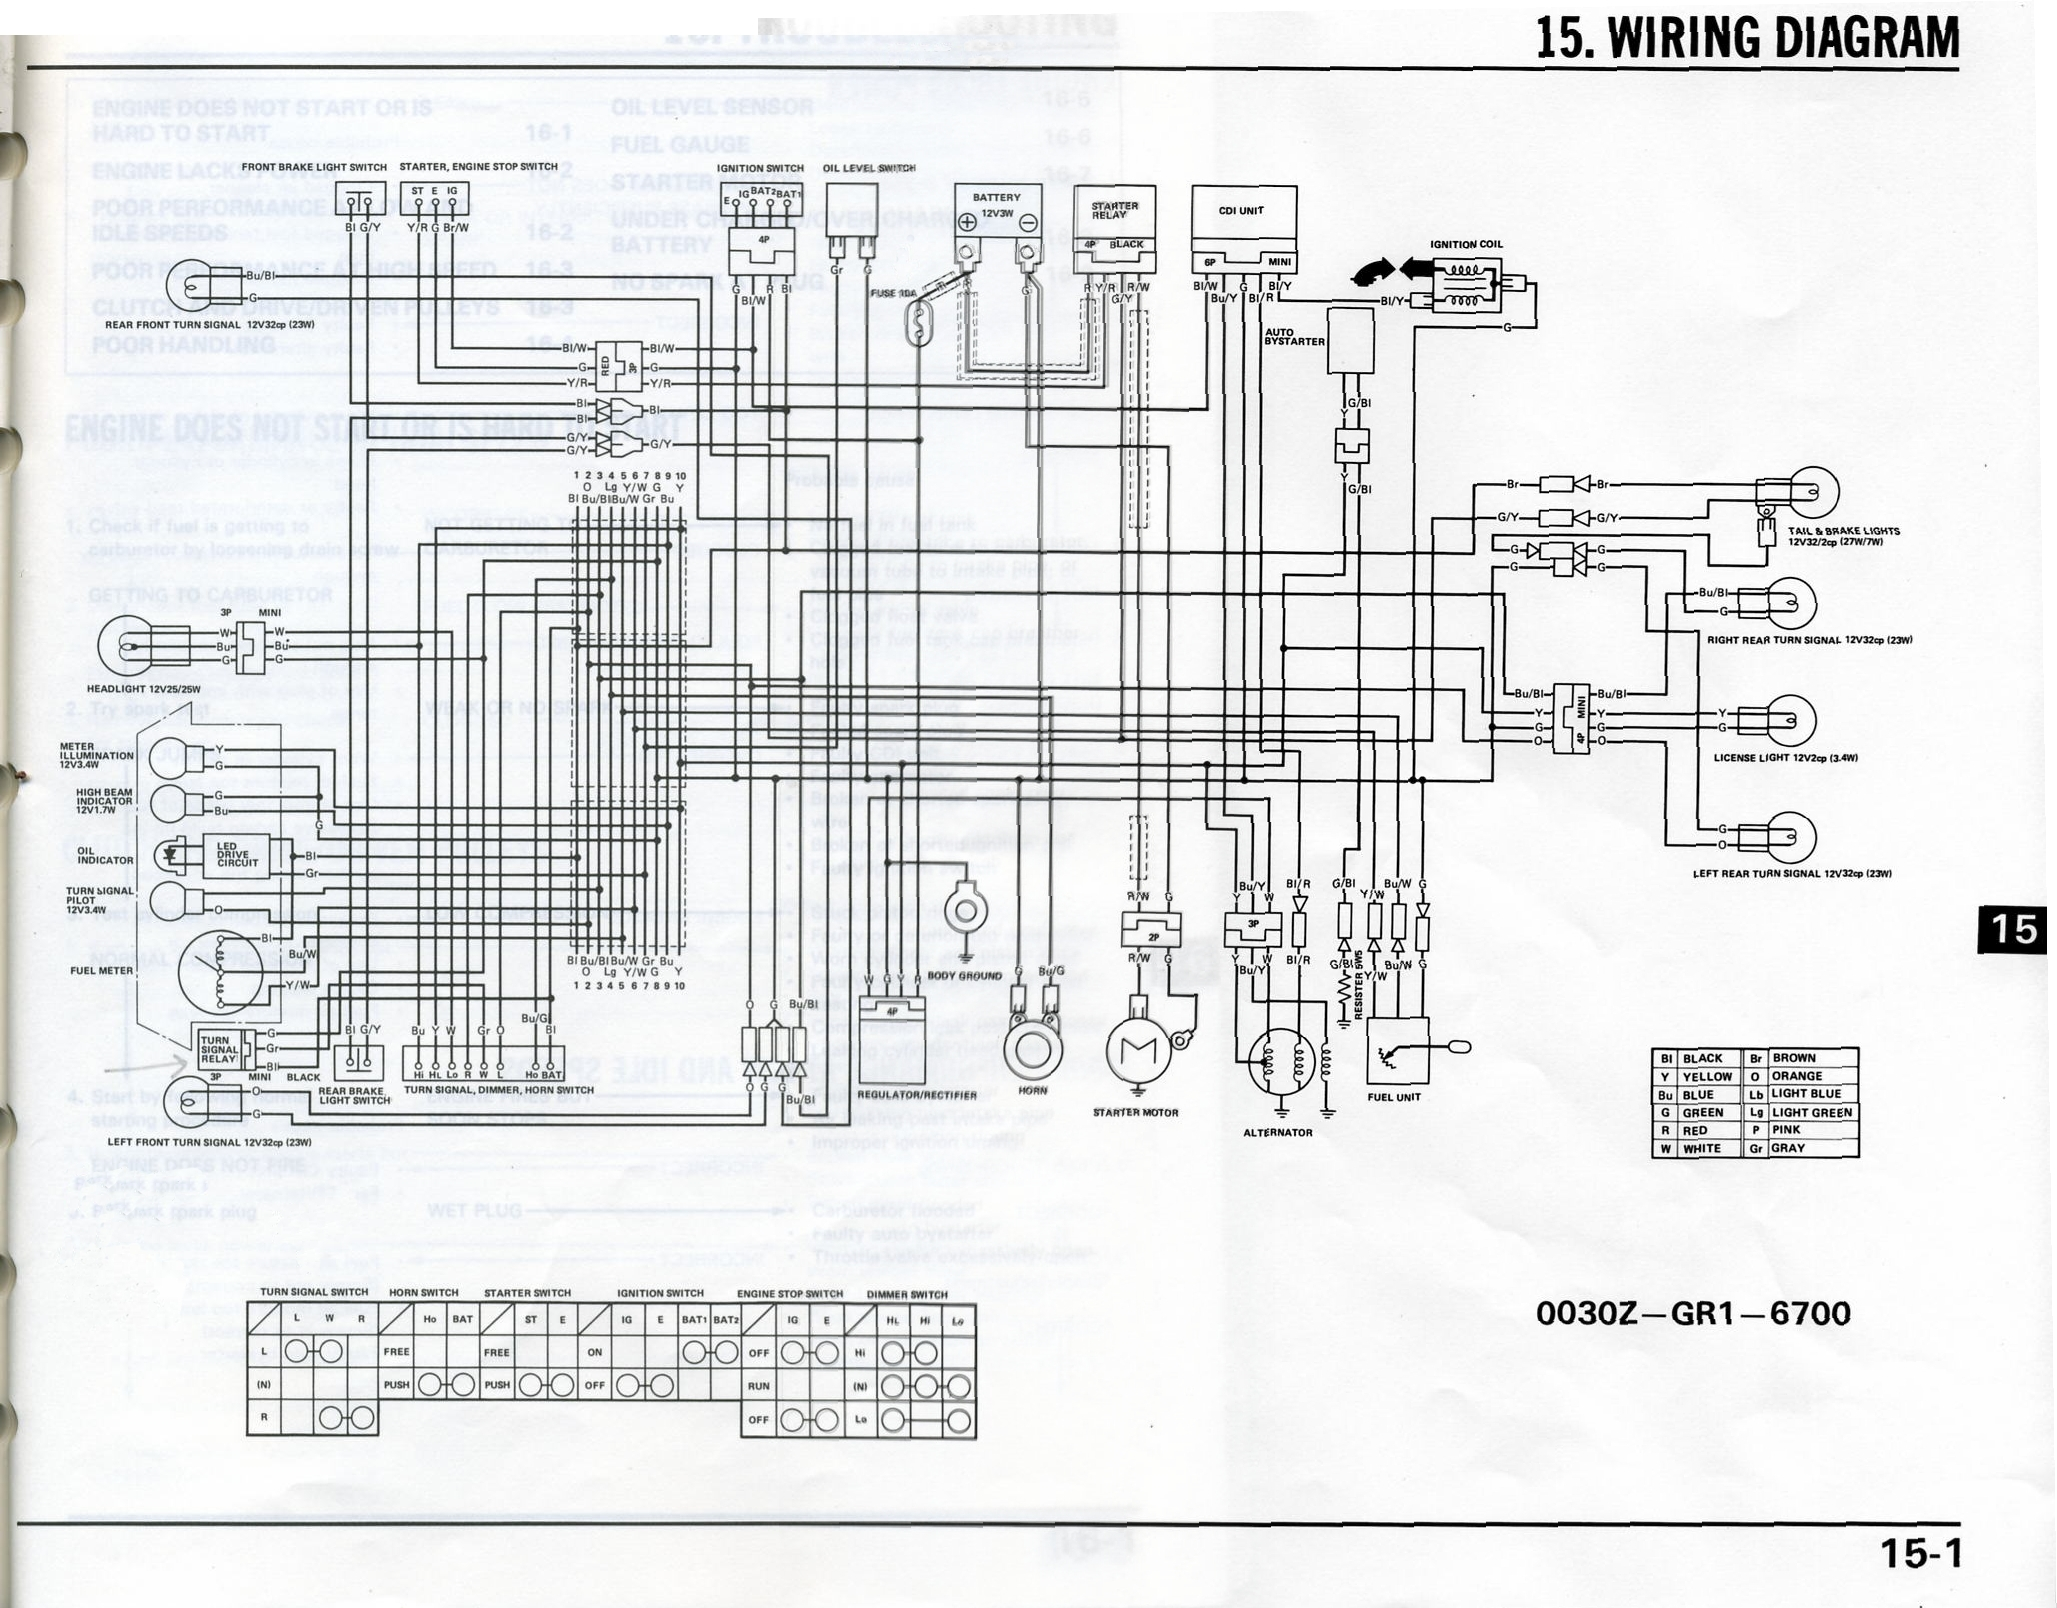 SE50_1987_Wire_Diagram honda elite wiring diagram honda 1989 elite 50 \u2022 wiring diagrams 1986 honda rebel 250 wiring diagram at bayanpartner.co